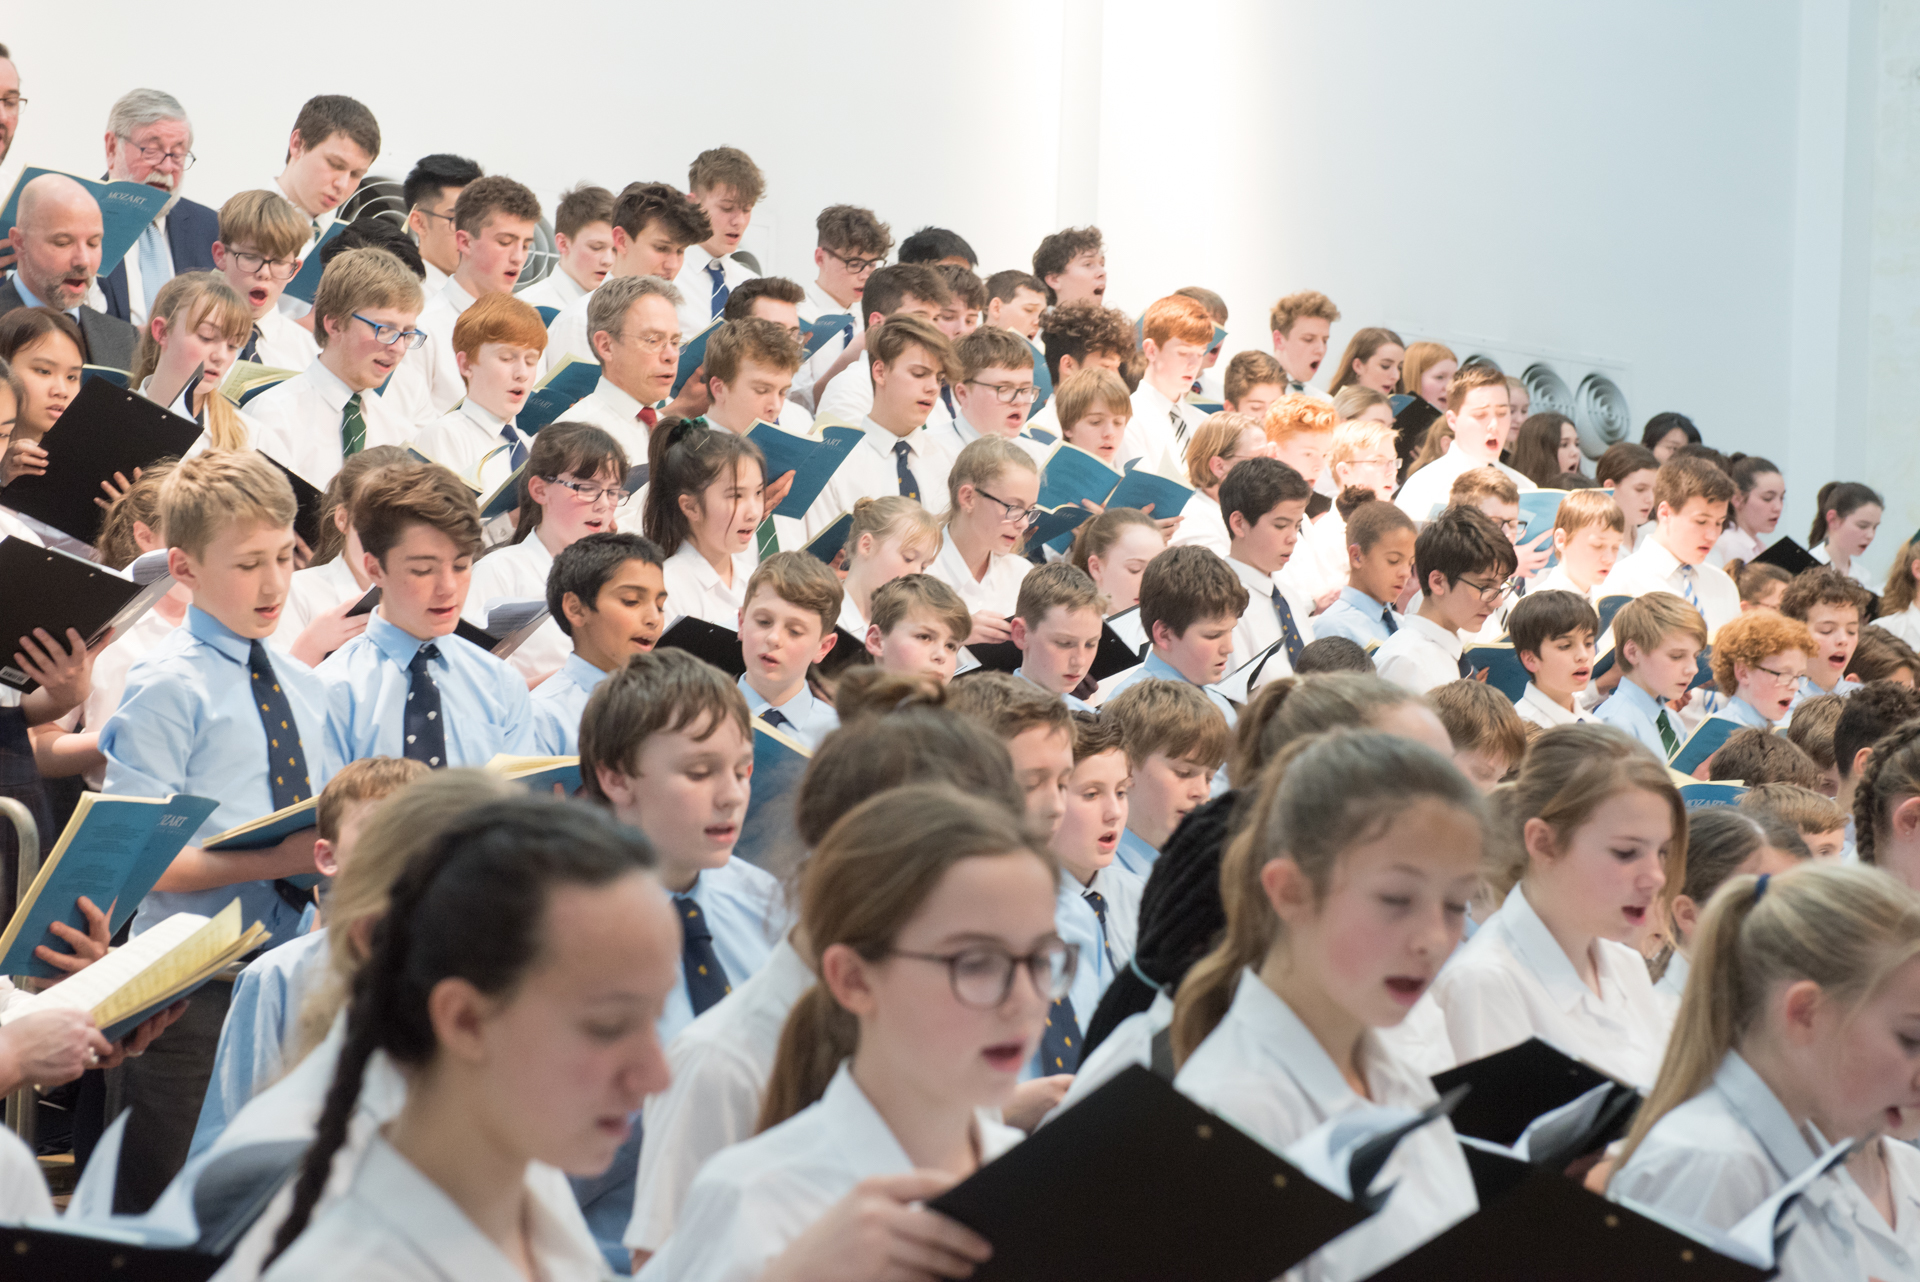 Hundreds of schoolchildren raise the roof in concert involving numerous unusual objects